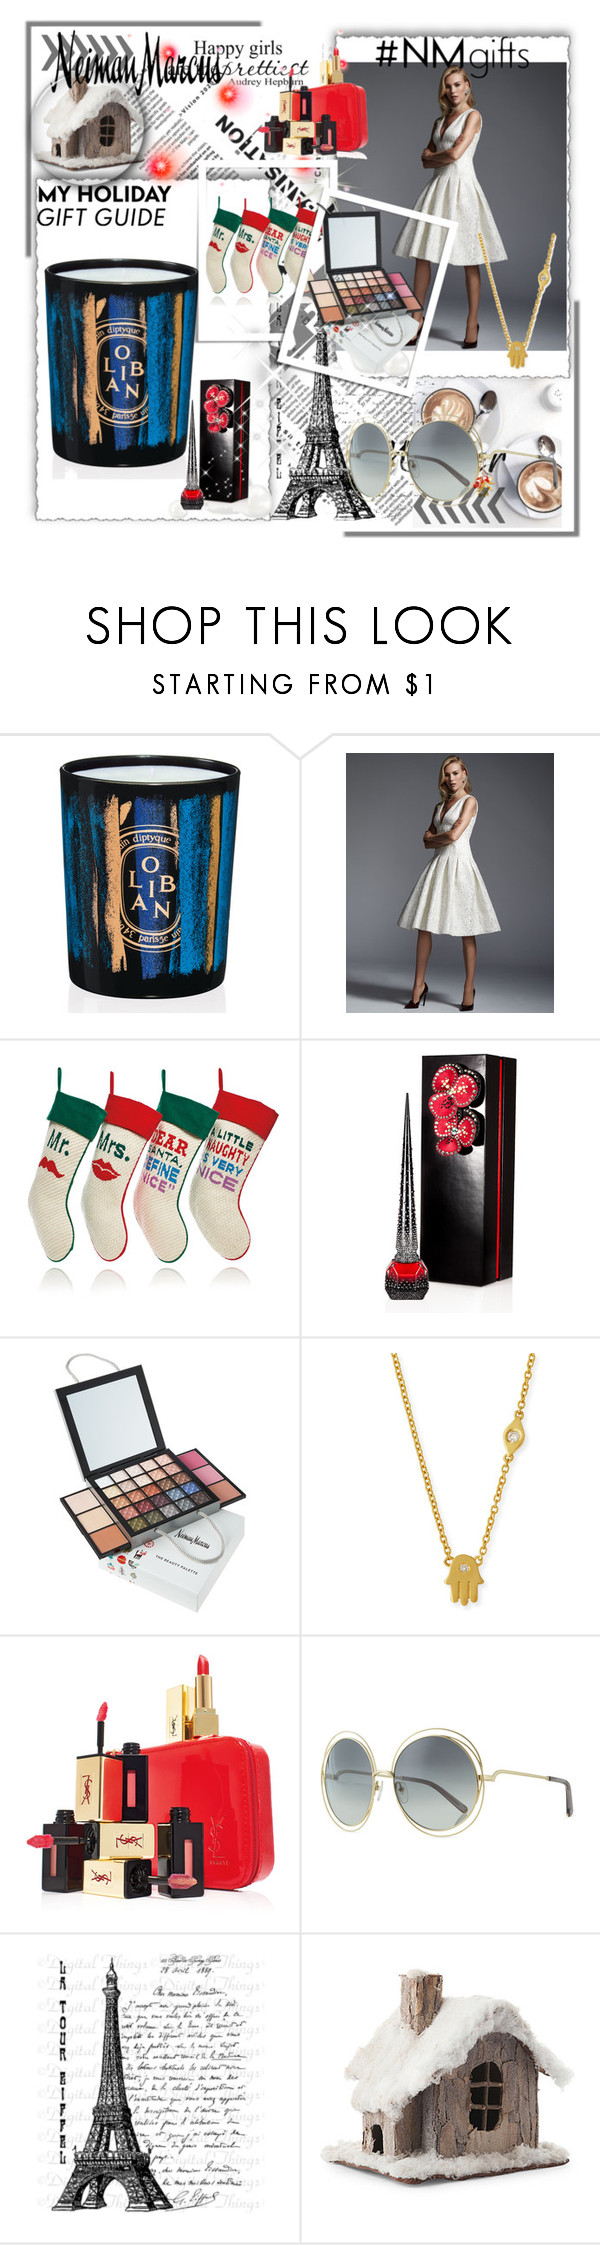 """""""The Holiday Wish List With Neiman Marcus: Contest Entry"""" by elle993 ❤ liked on Polyvore featuring Diptyque, Carmen Marc Valvo, Jonathan Adler, Christian Louboutin, Neiman Marcus, Sydney Evan, Yves Saint Laurent, Chloé and NMgifts"""